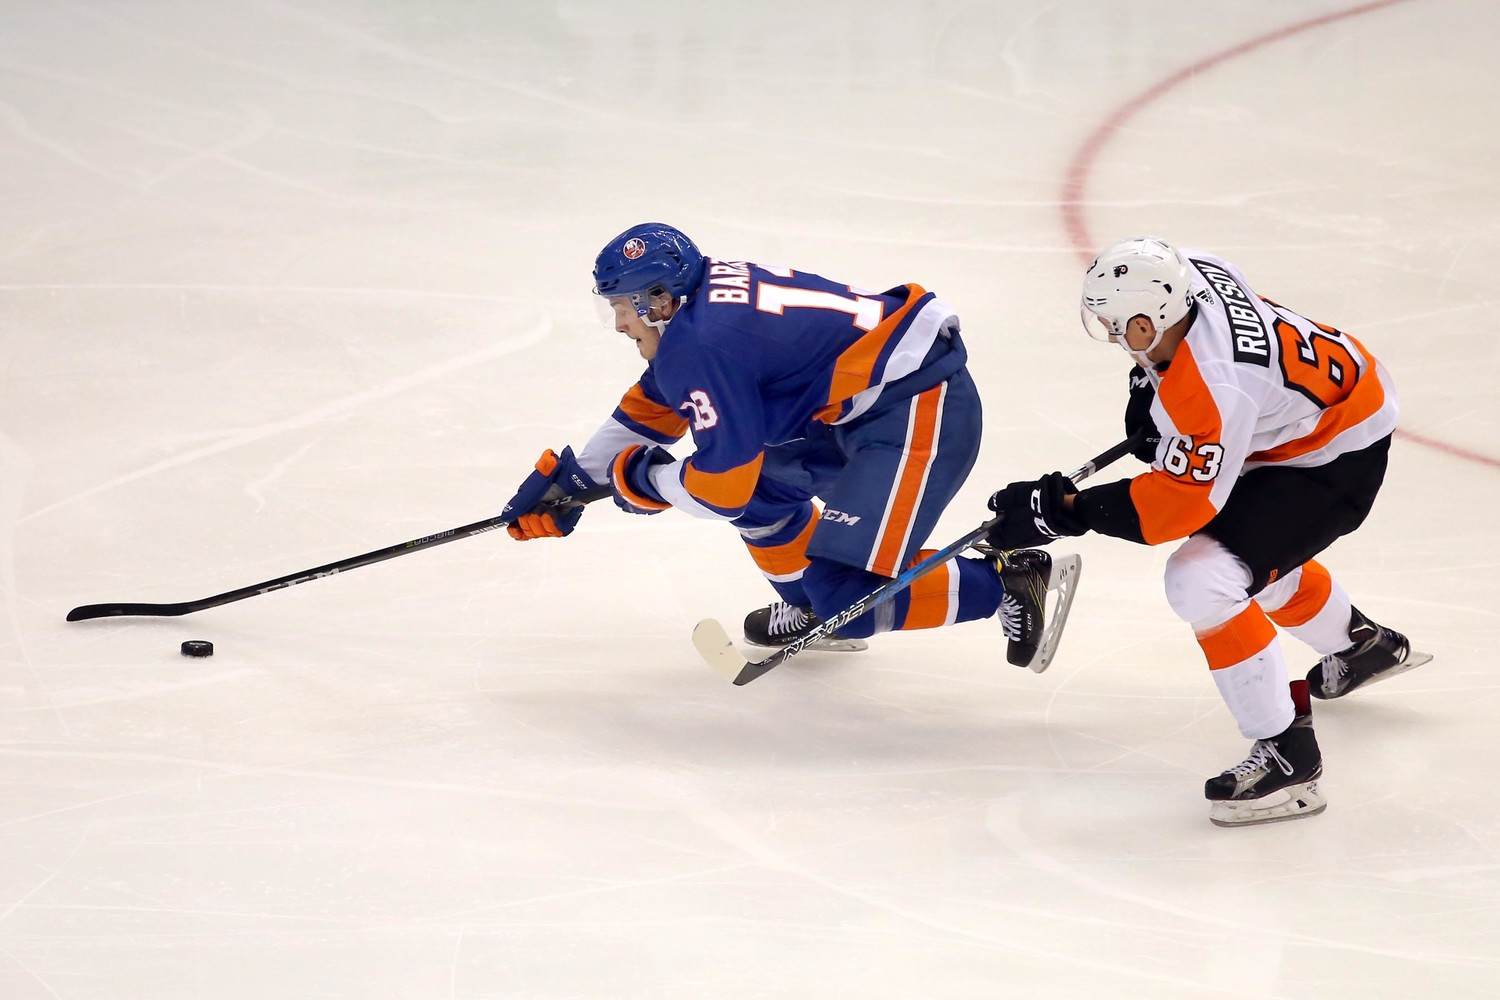 Flyer's German Rubtsov tried to steal the puck from Islander's Mathew Barzal.